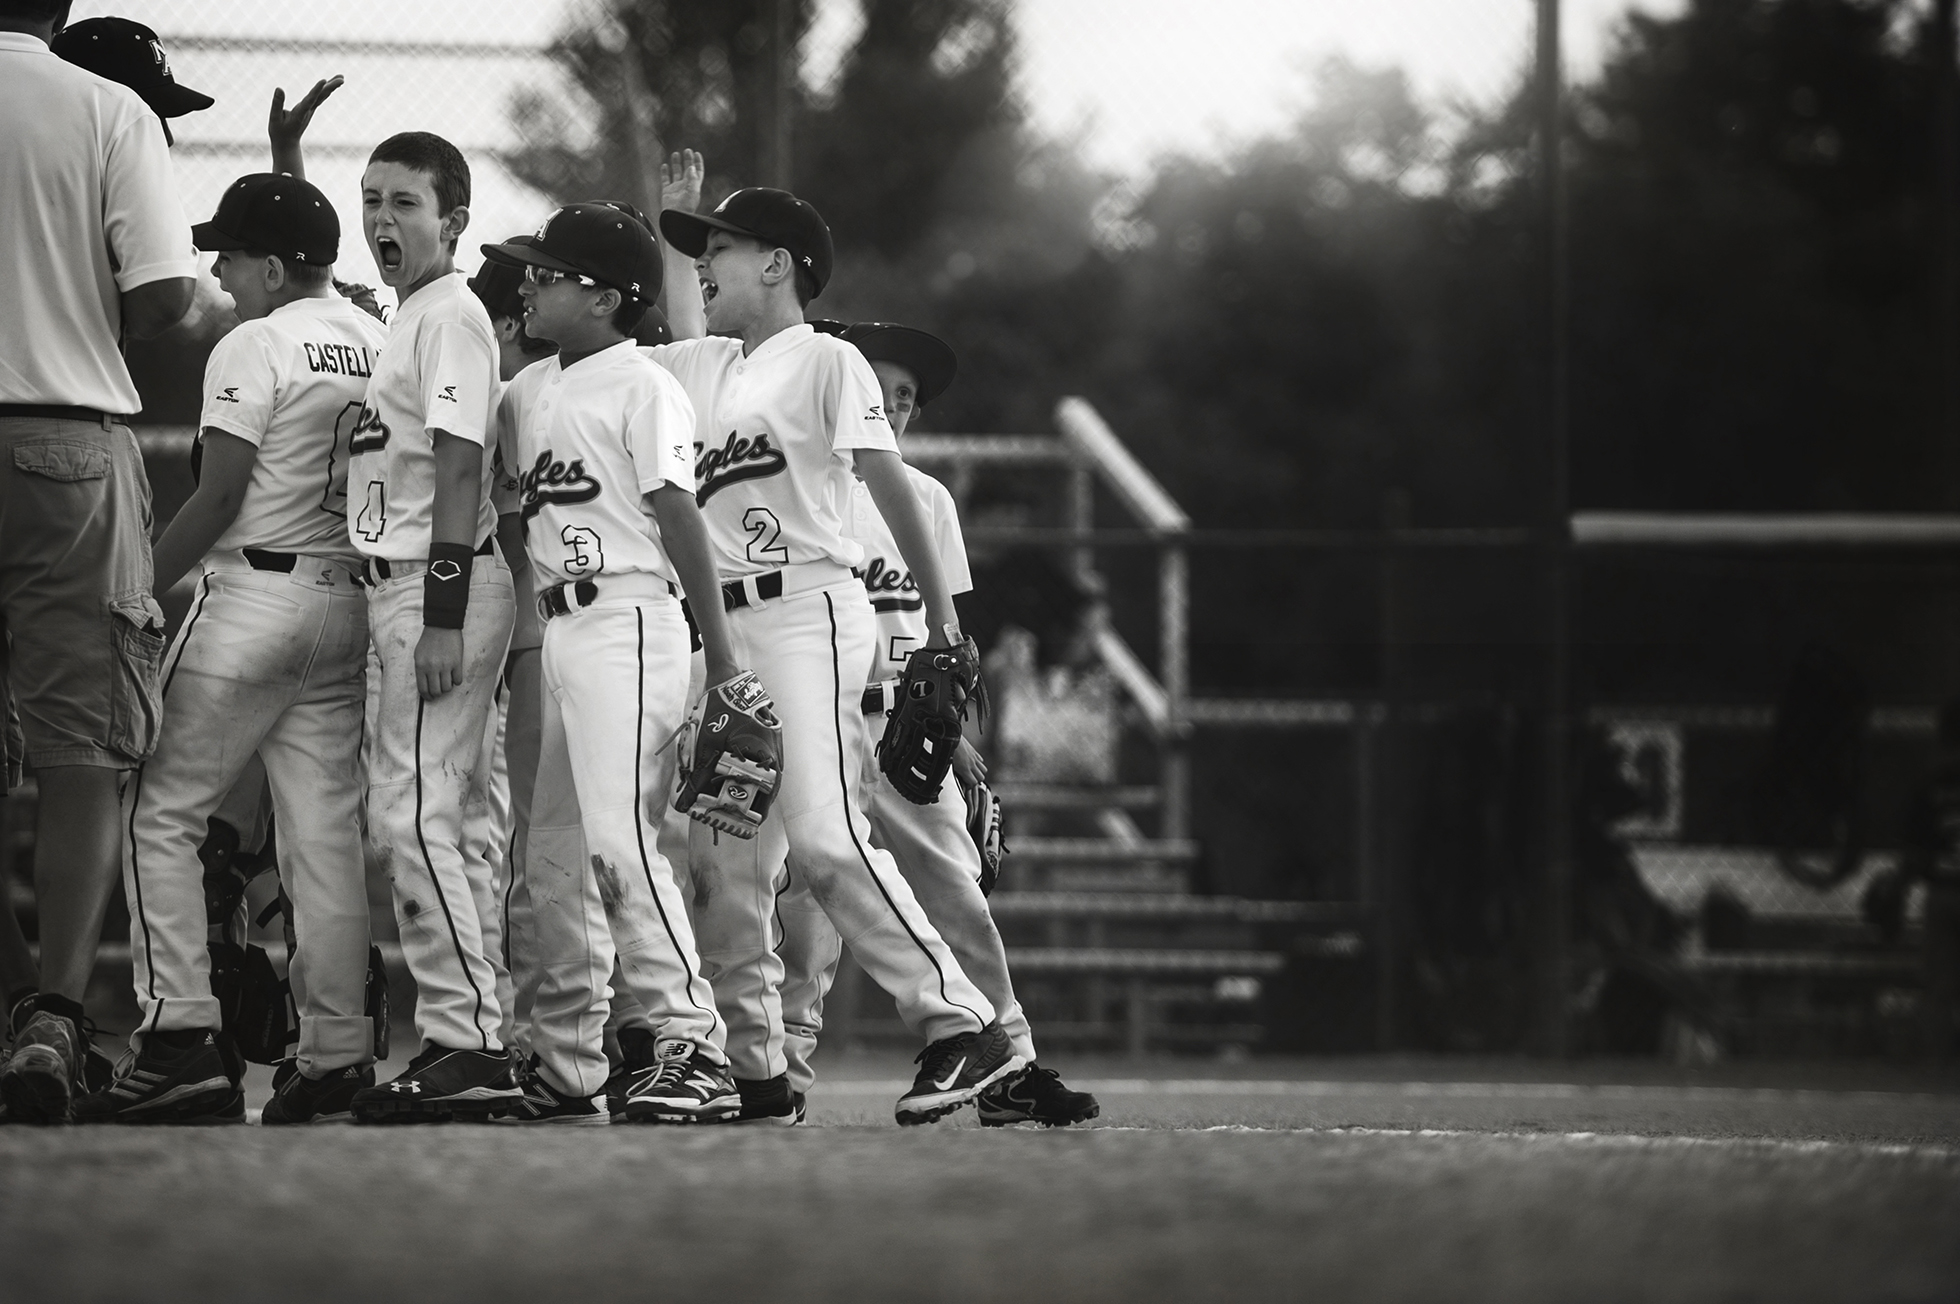 photographing kids sports black and white photo of boys baseball team in huddle cheering by kellie bieser